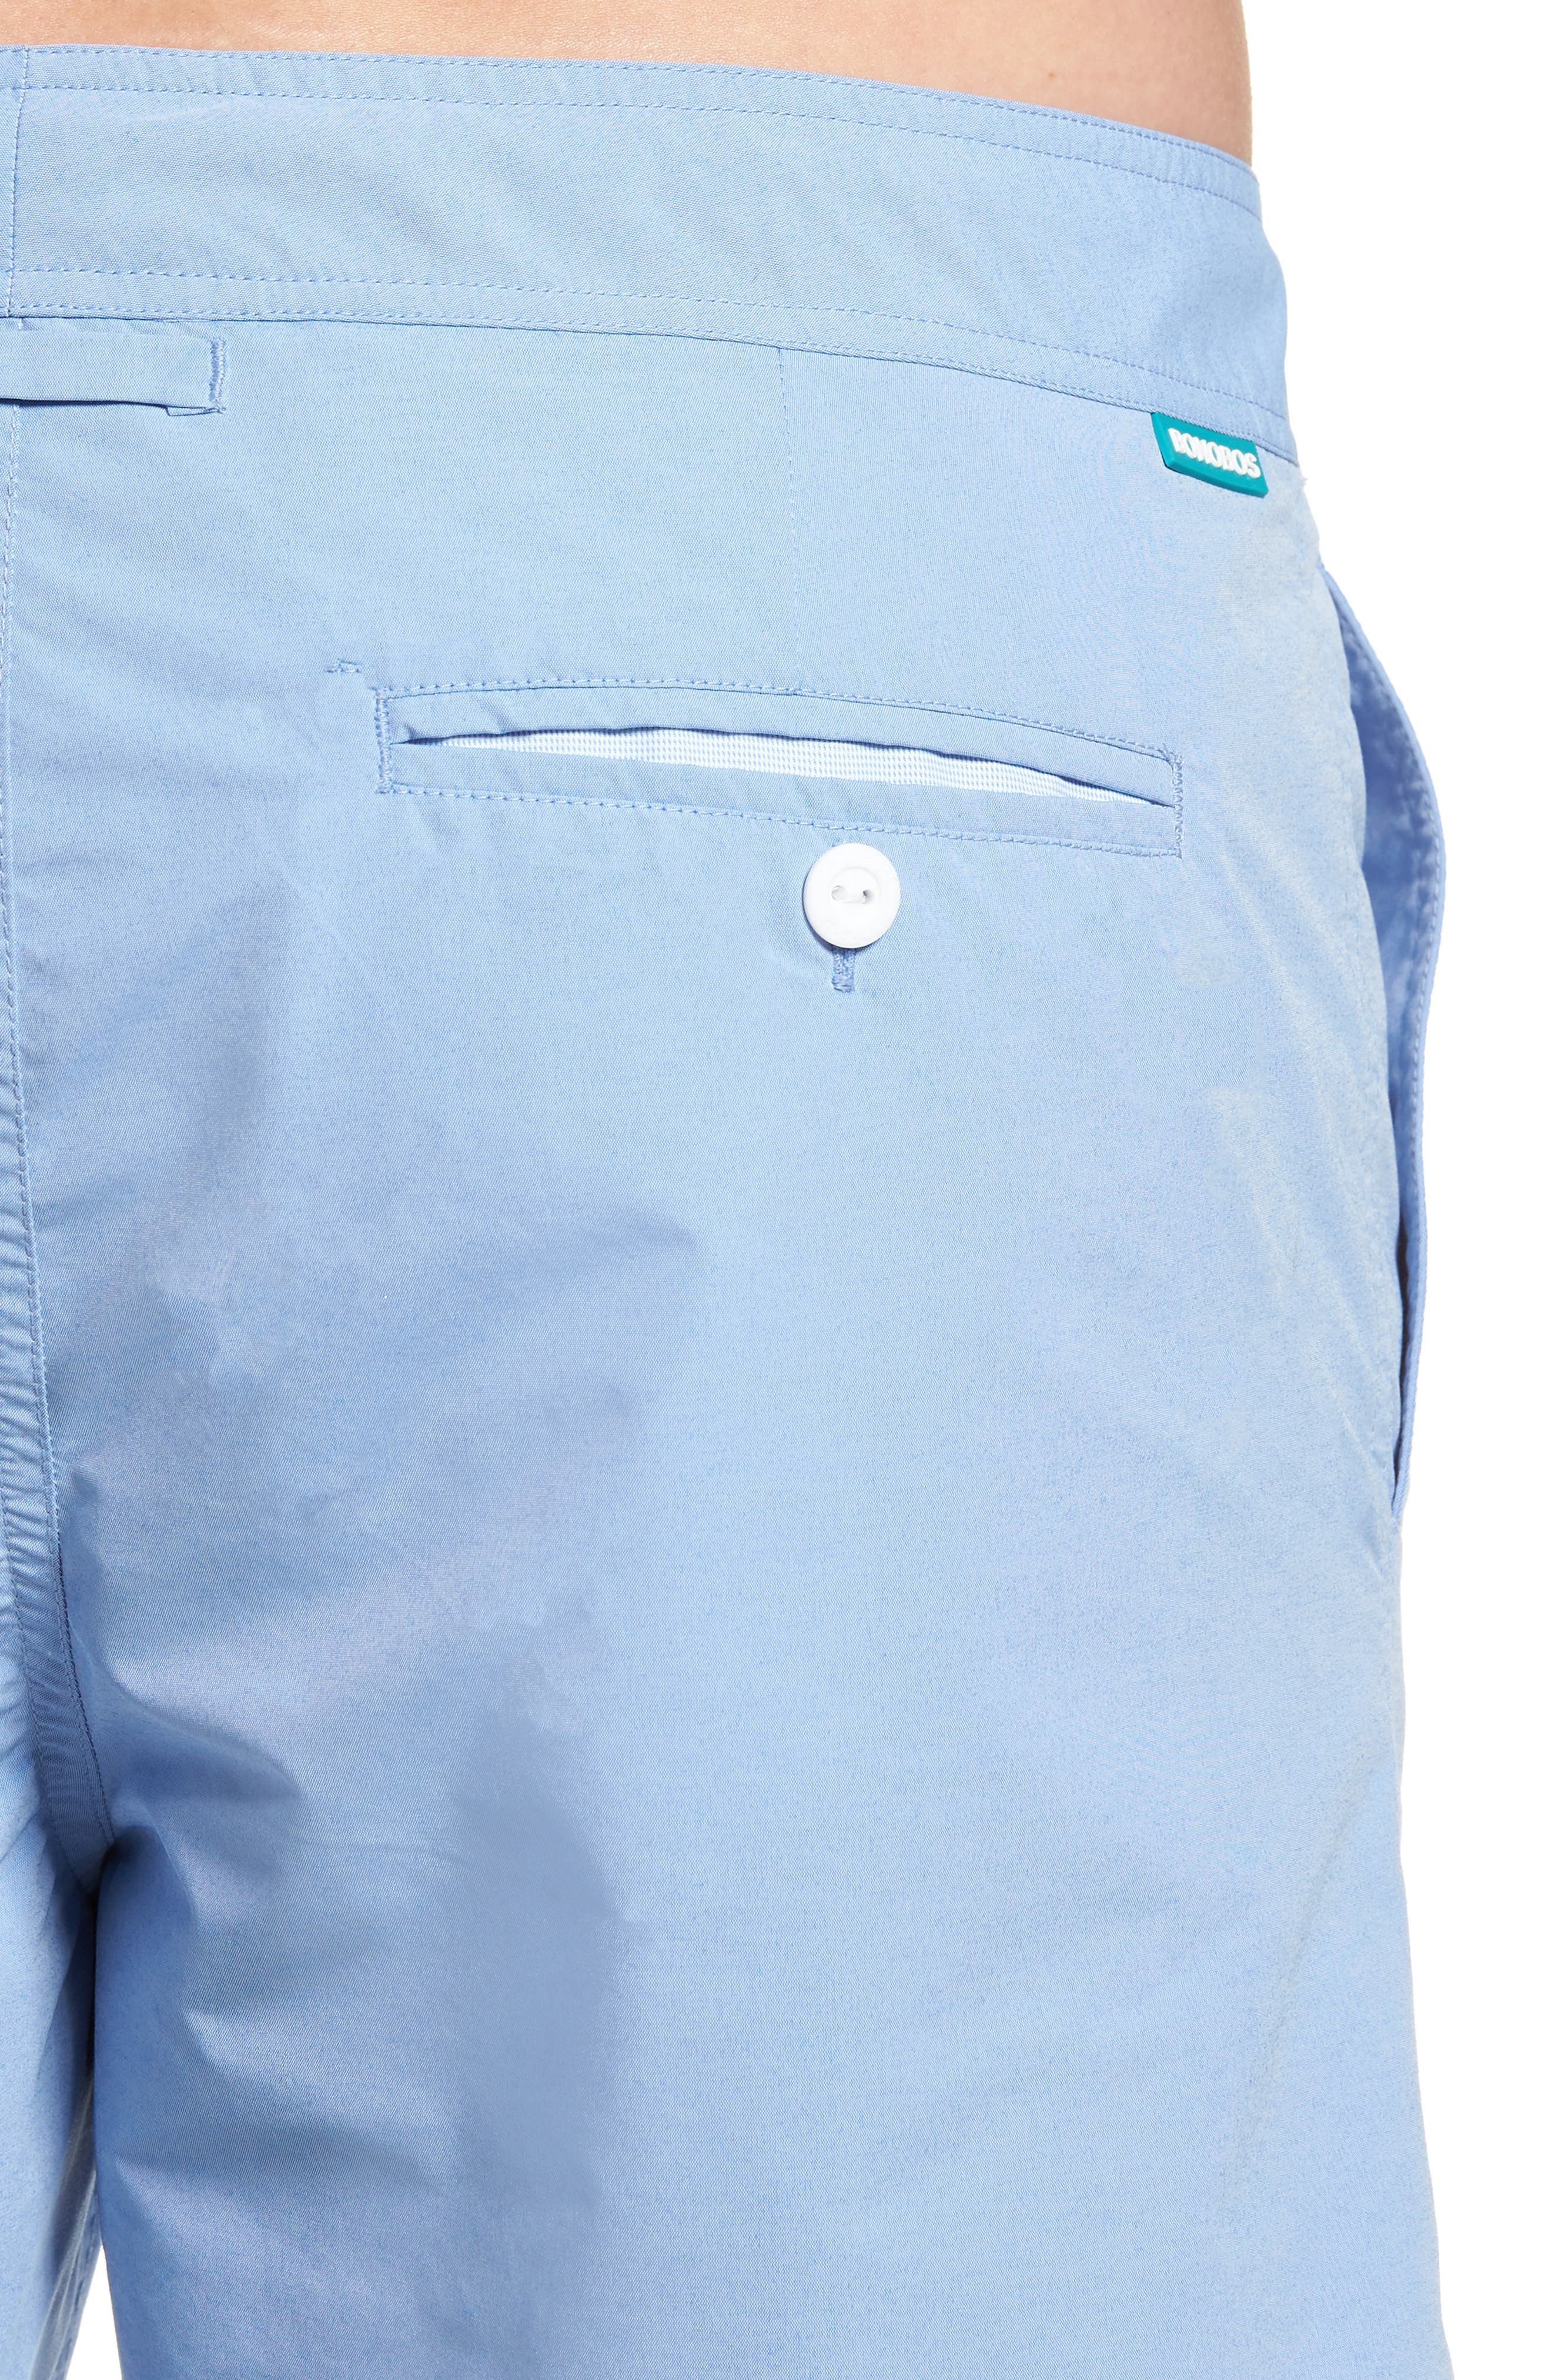 Solid 7-Inch Swim Trunks,                             Alternate thumbnail 4, color,                             Blue Chambray